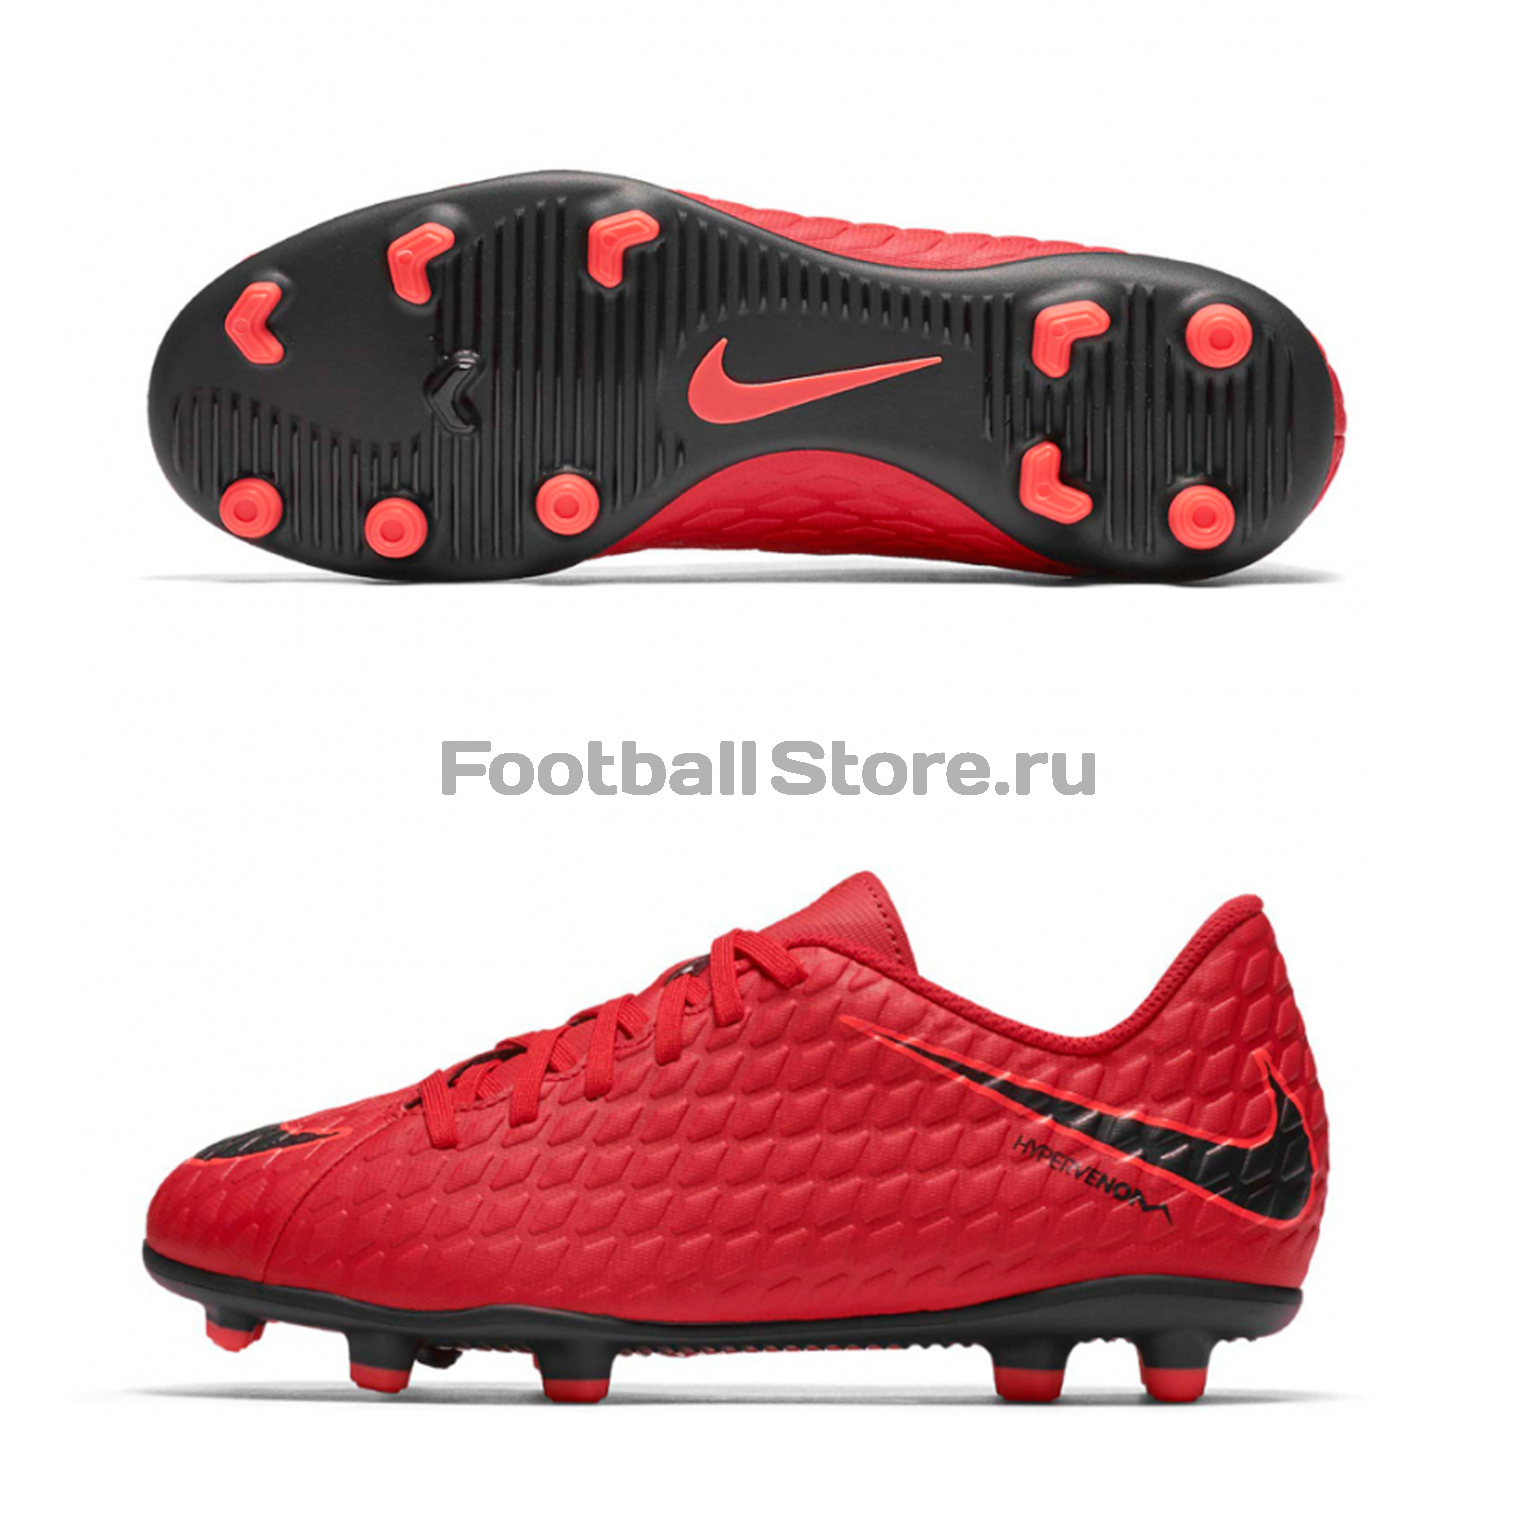 Бутсы Nike JR Hypervenom Phade III FG 852580-616 бутсы nike superfly academy gs cr7 jr fg mg aj3111 390